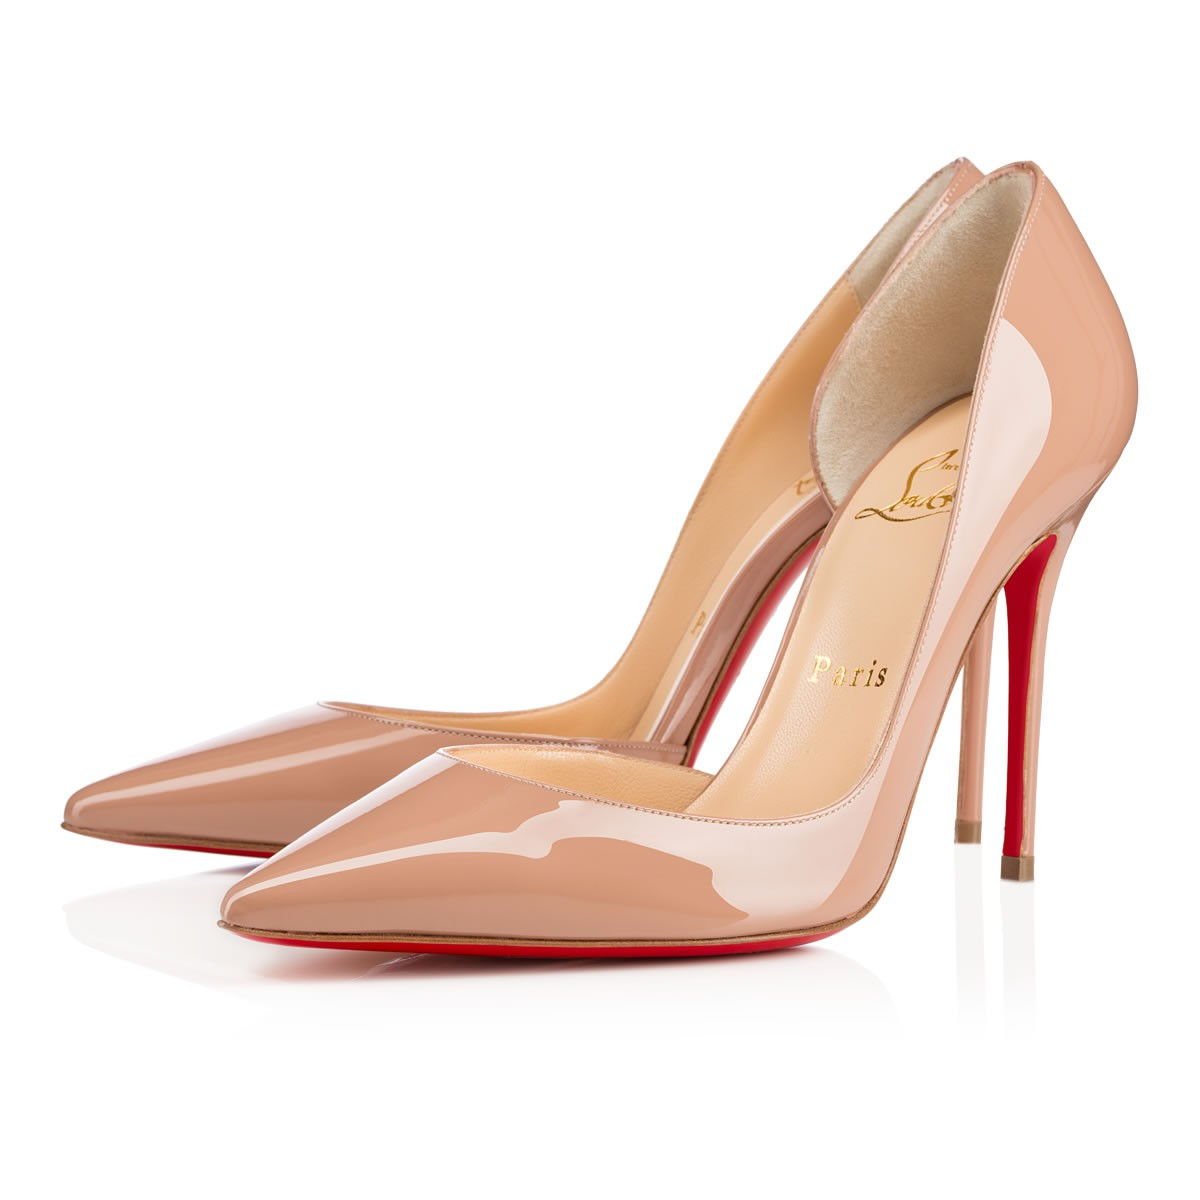 christian louboutin black pumps 3 inch